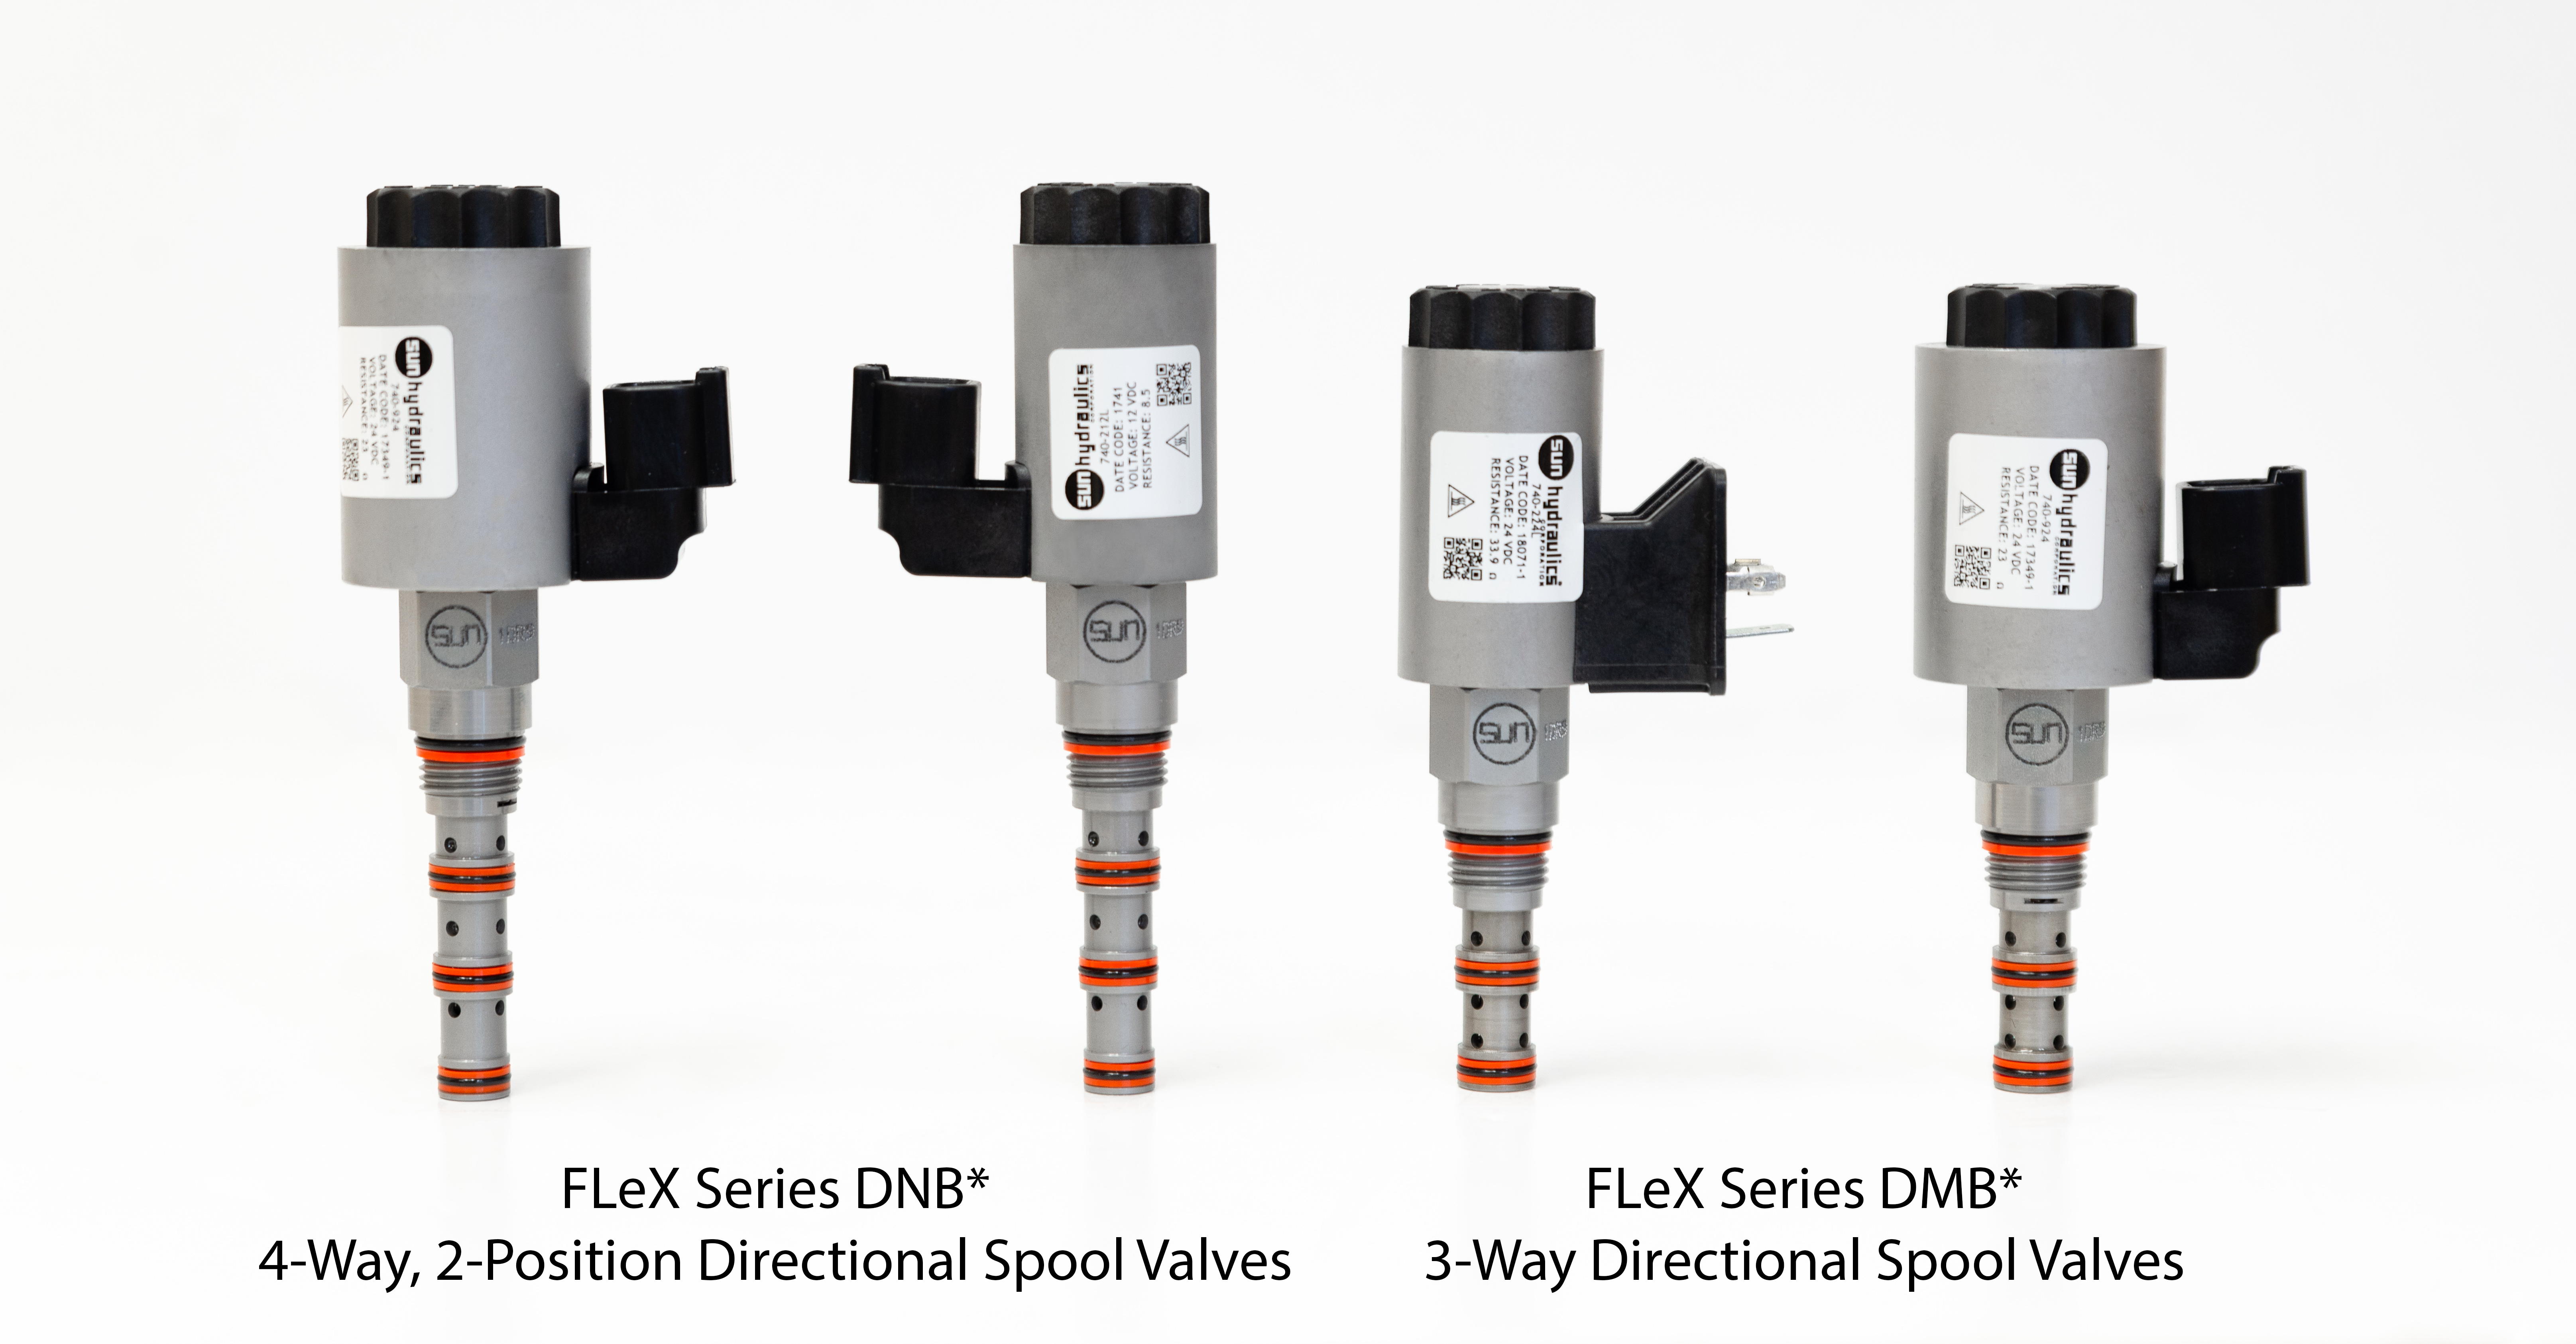 New FLeX Series Directional Valves, Series DNB* and DMB*